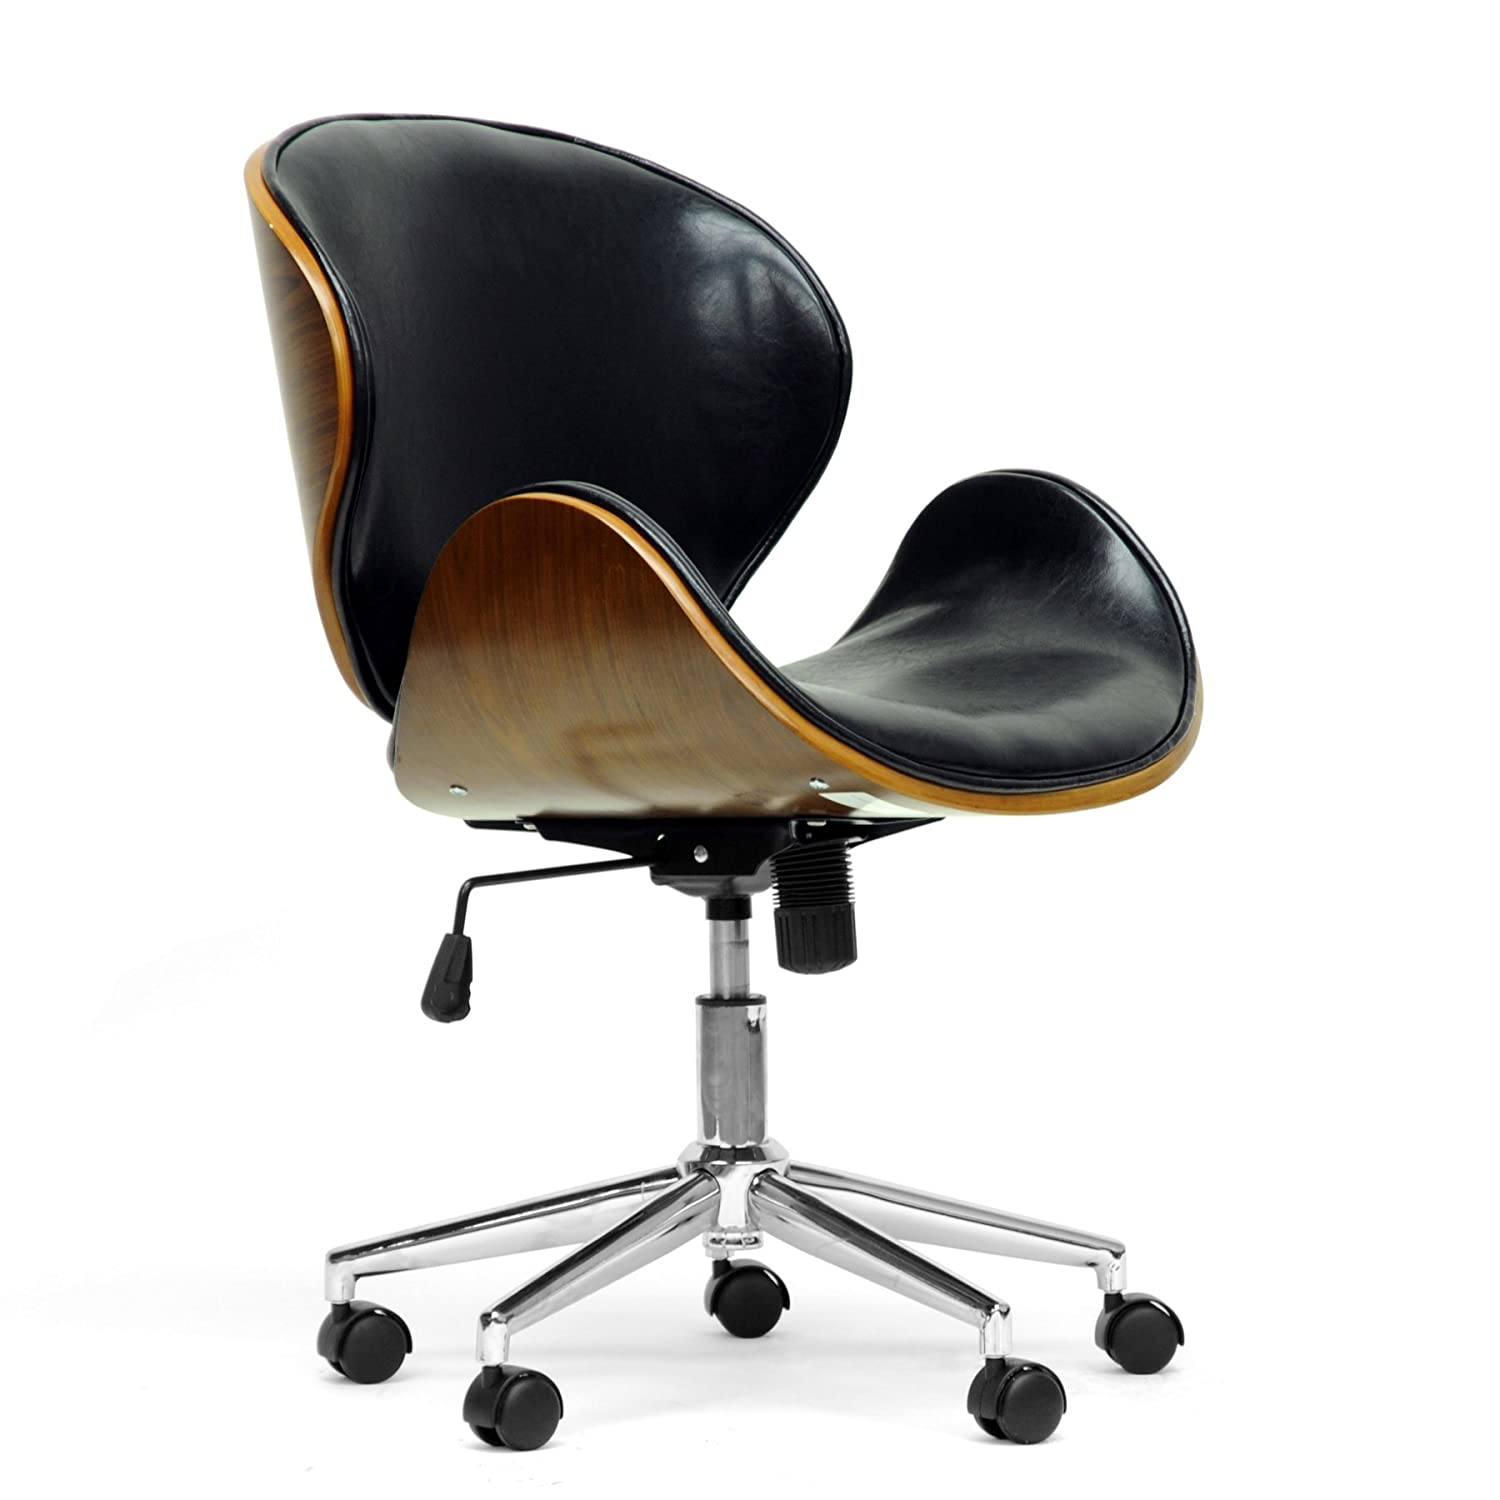 Baxton Studio Bruce Modern Office Chair, Walnut/Black Wholesale Interiors SDM-2240-5 Walnut/Black